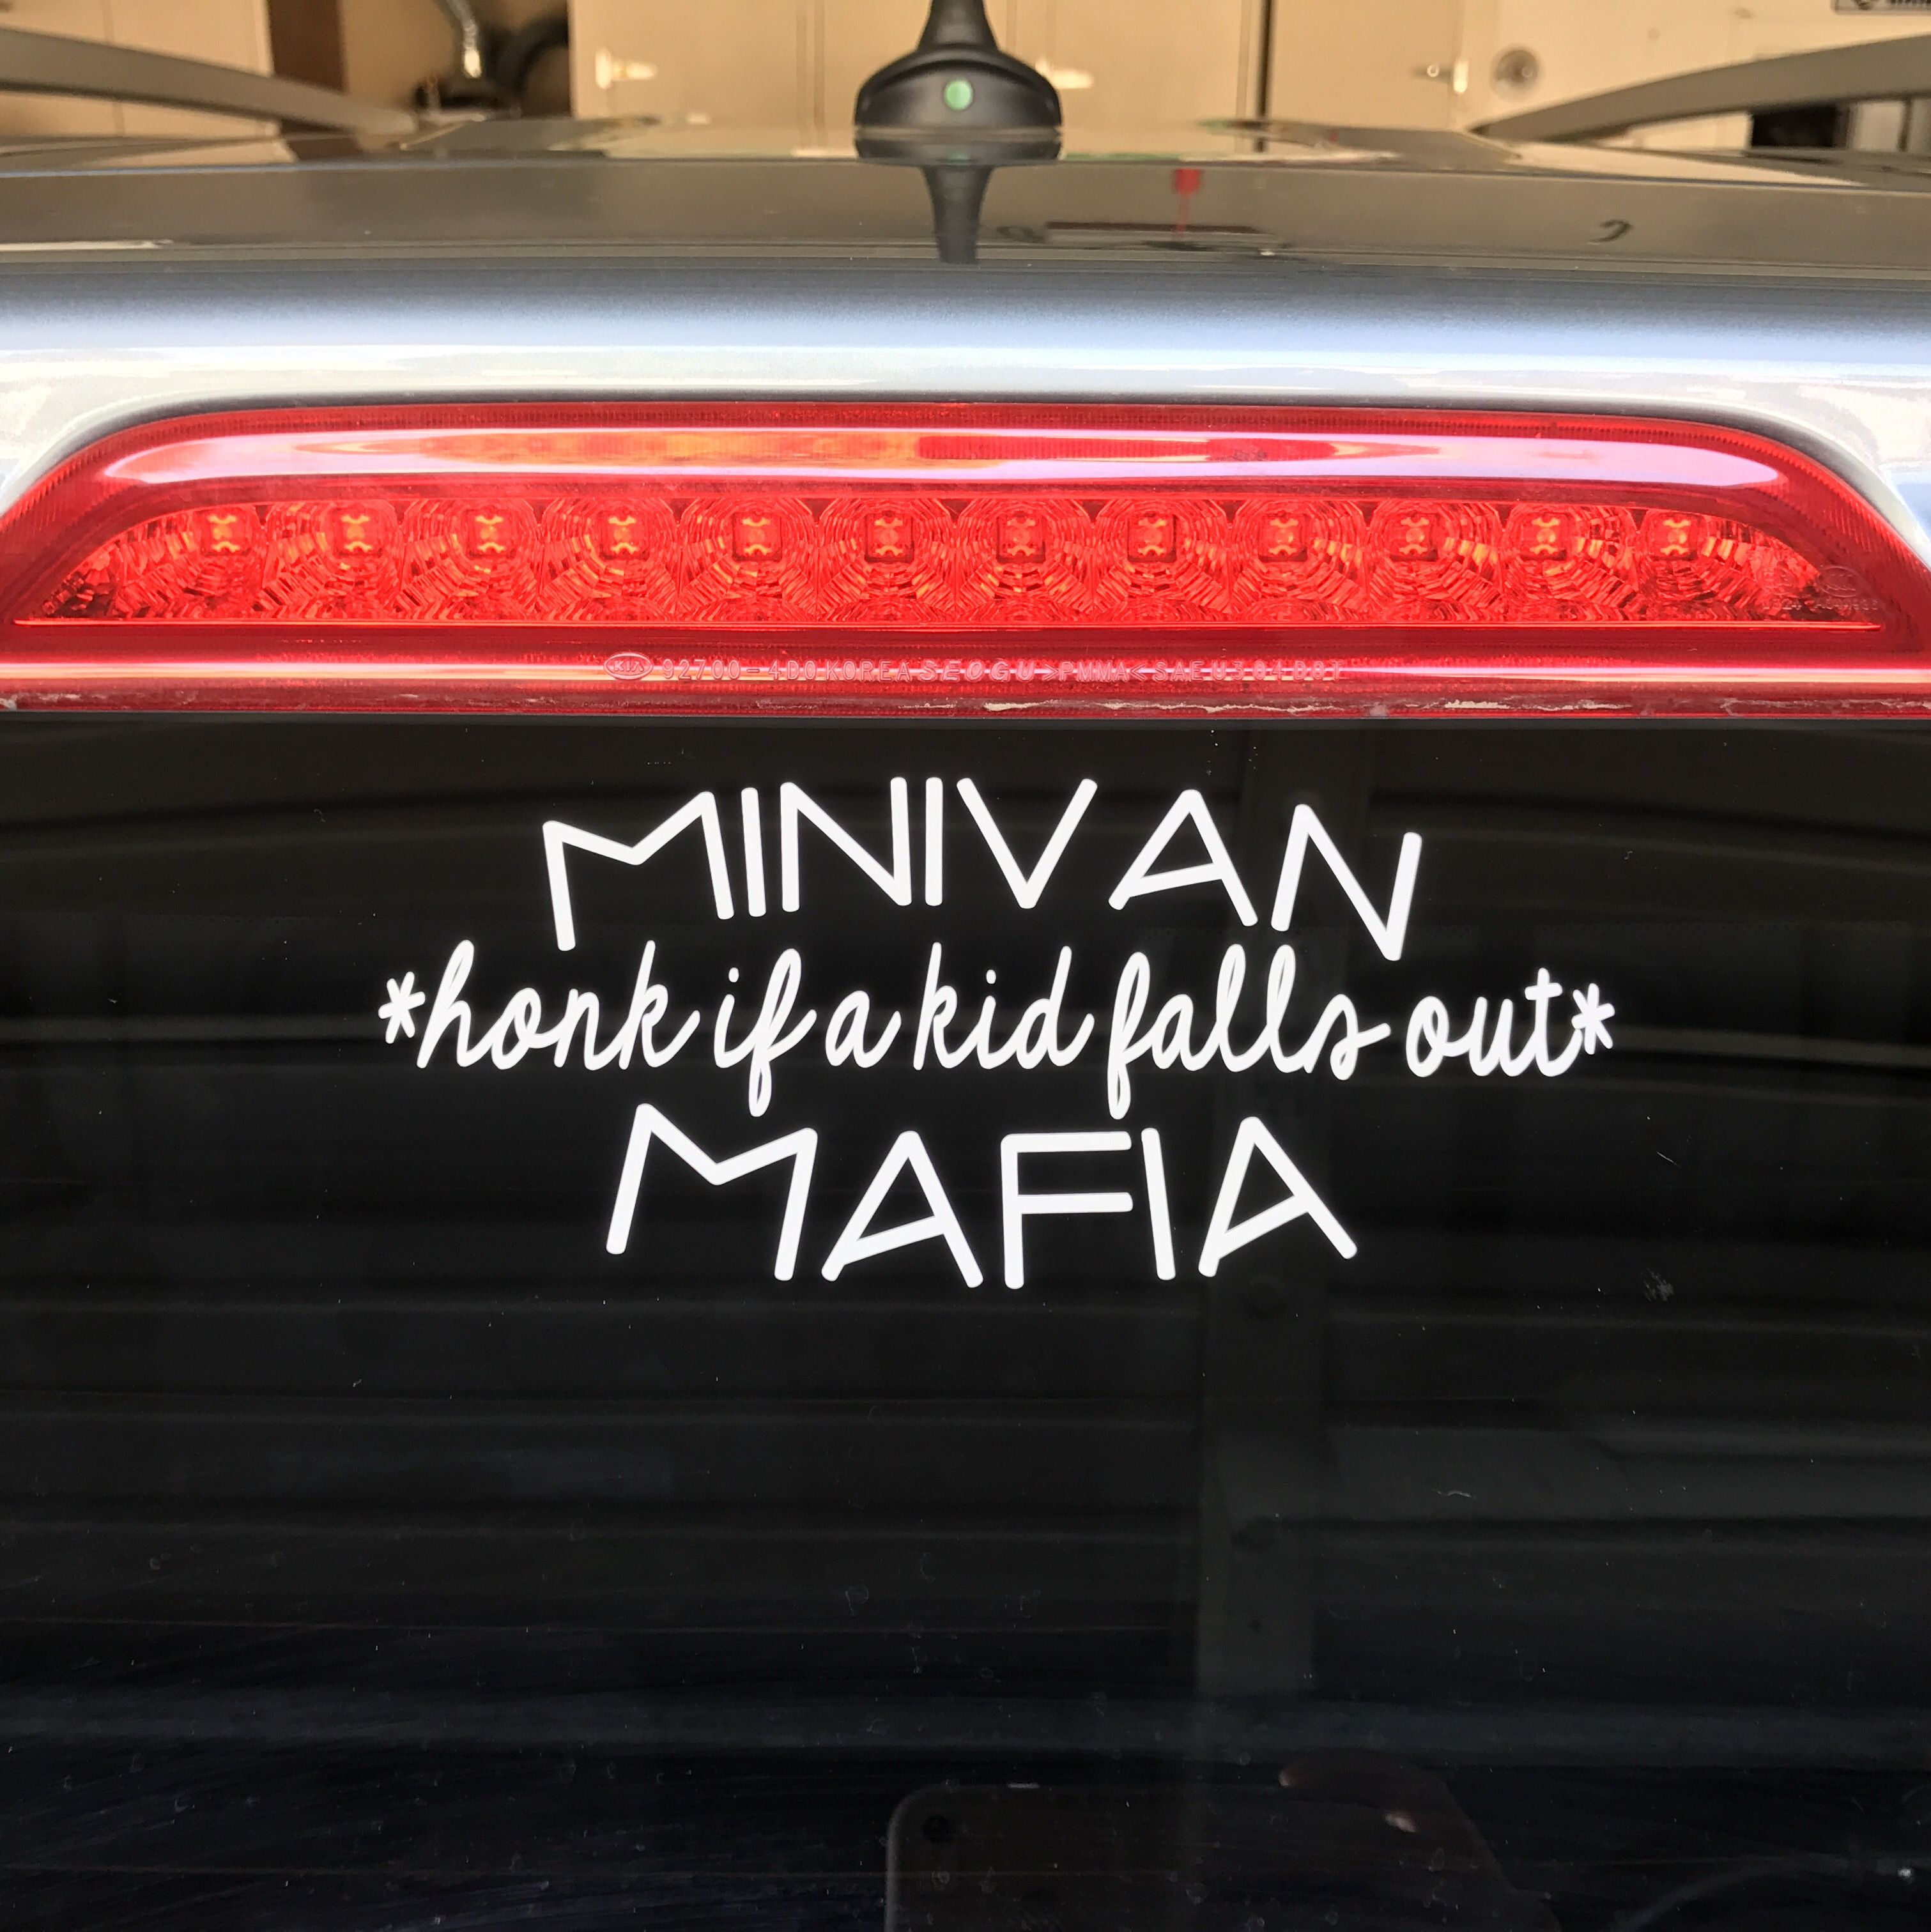 Minivan Decal Mafia Vans And Cricut - How to make car decals with cricut expression